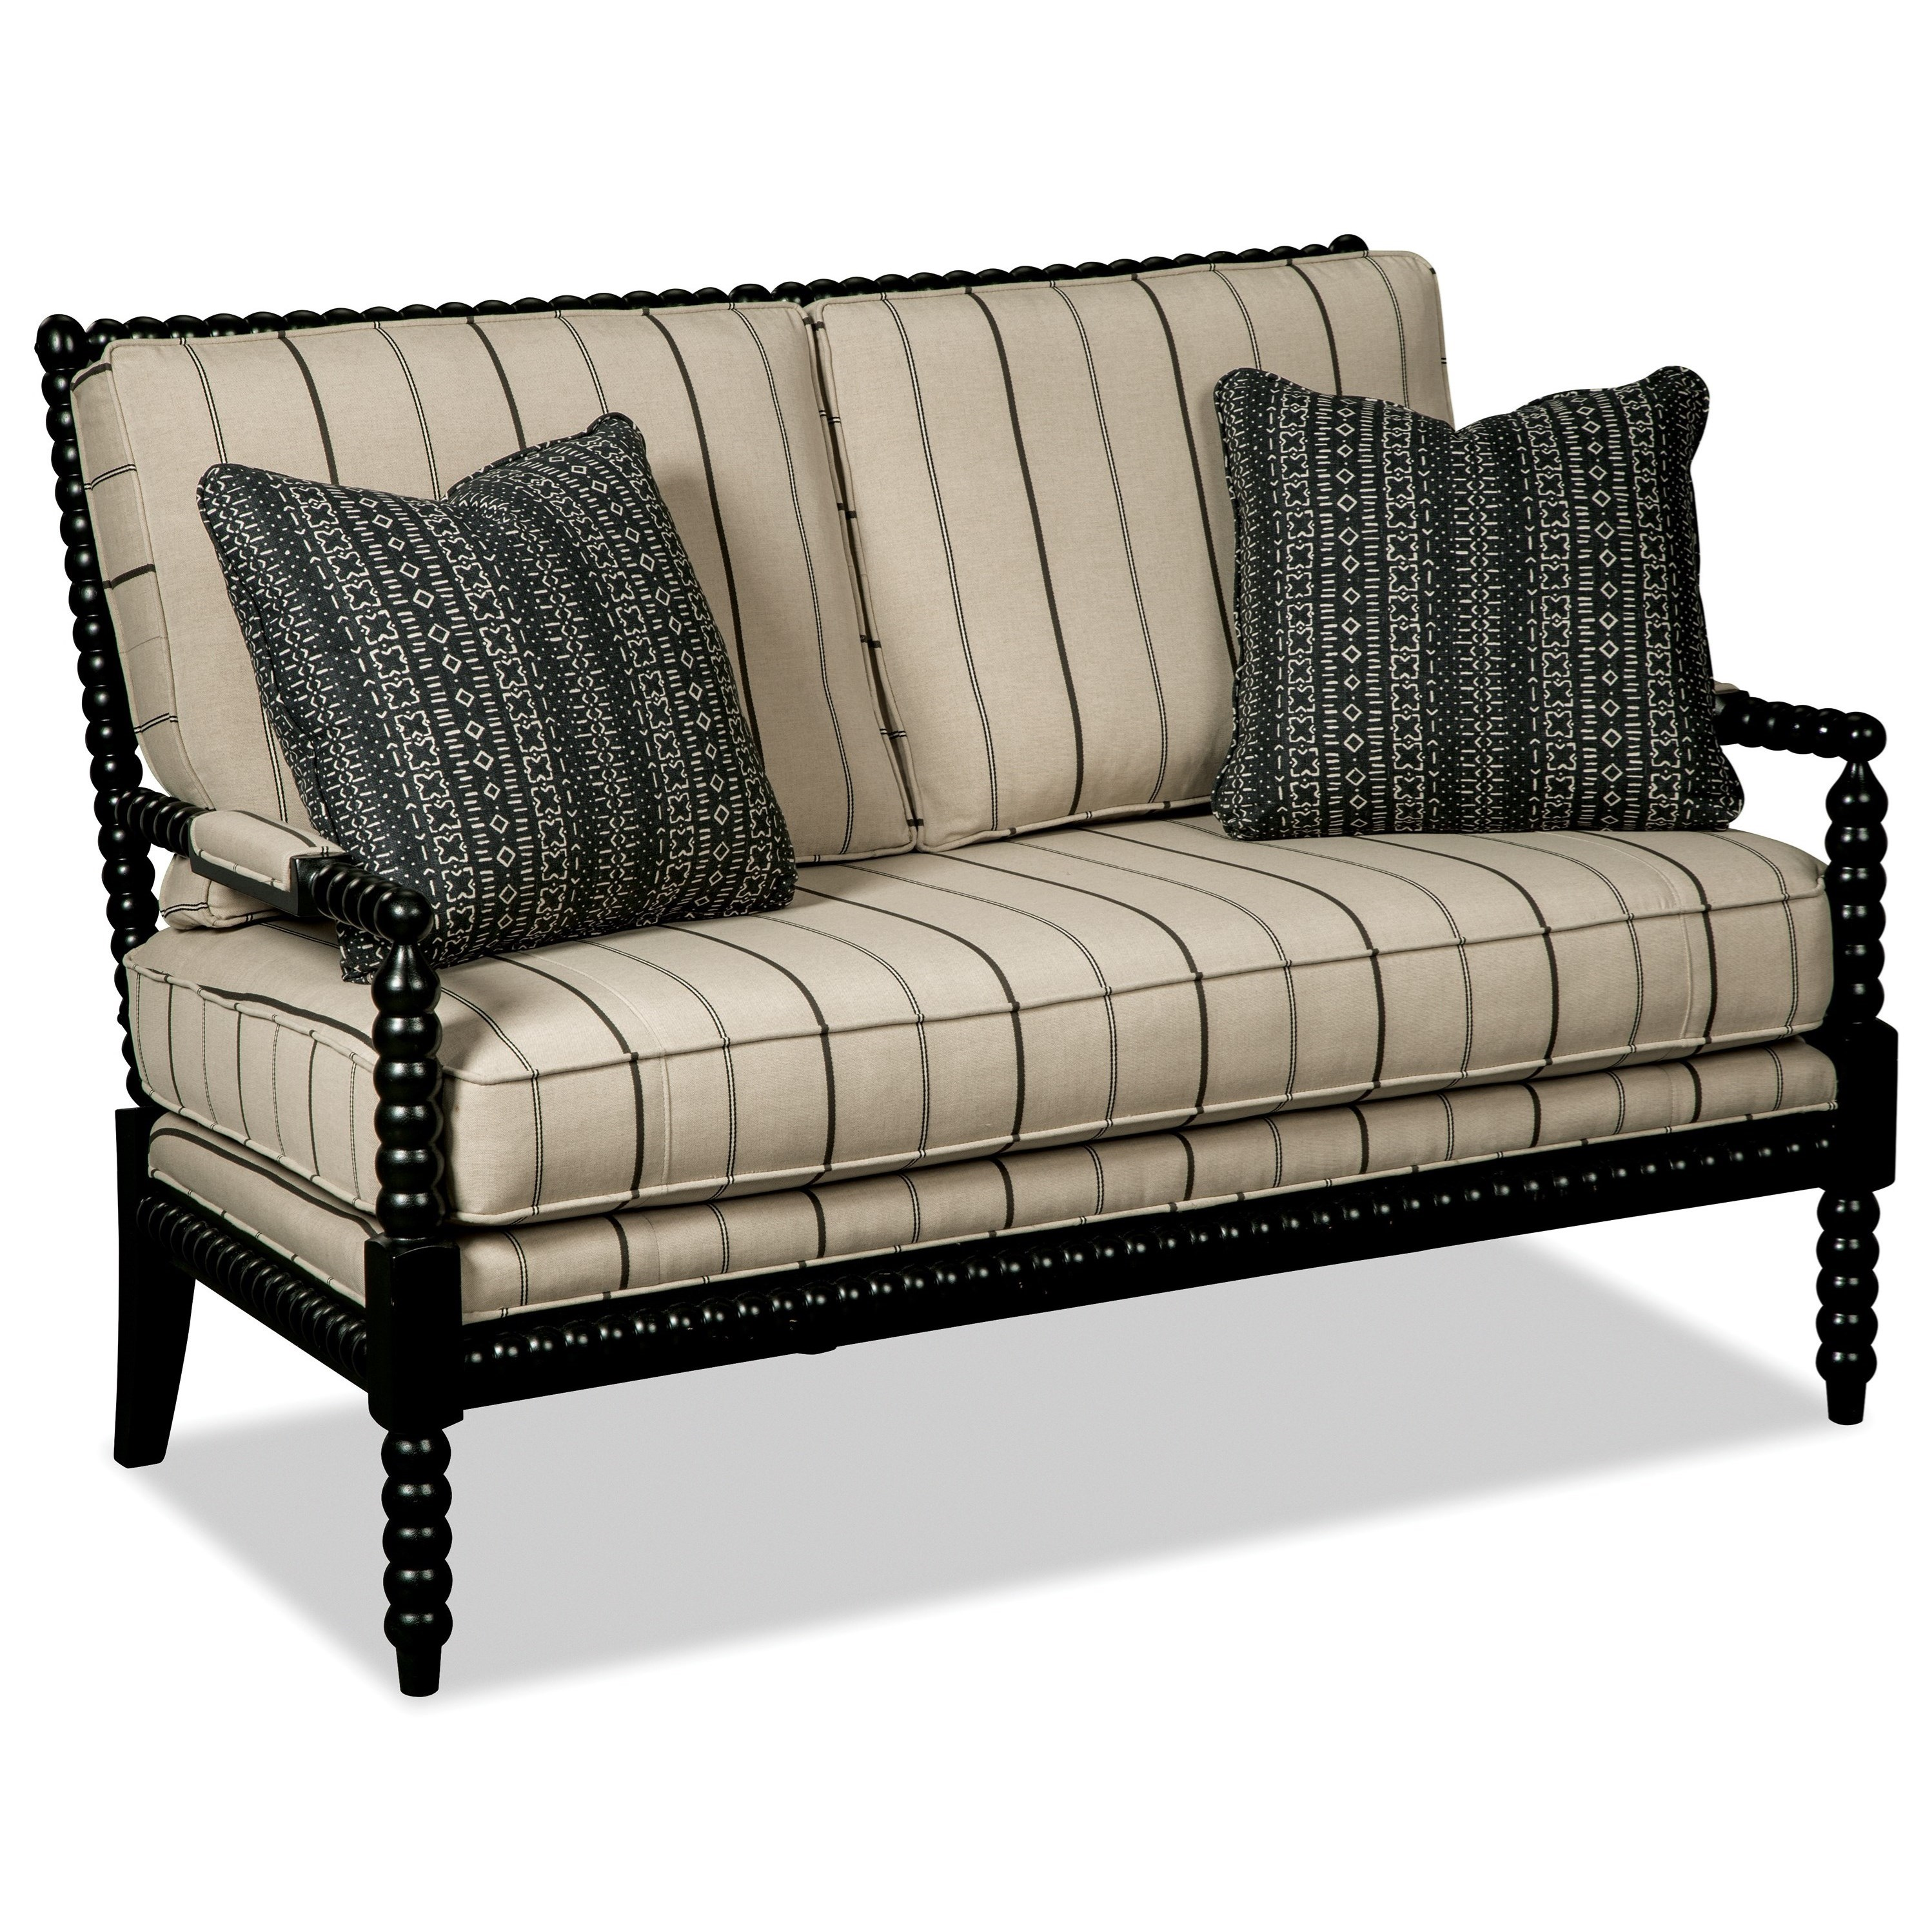 Craftmaster 077230 Settee - Item Number: 077230-CEVICHE-10